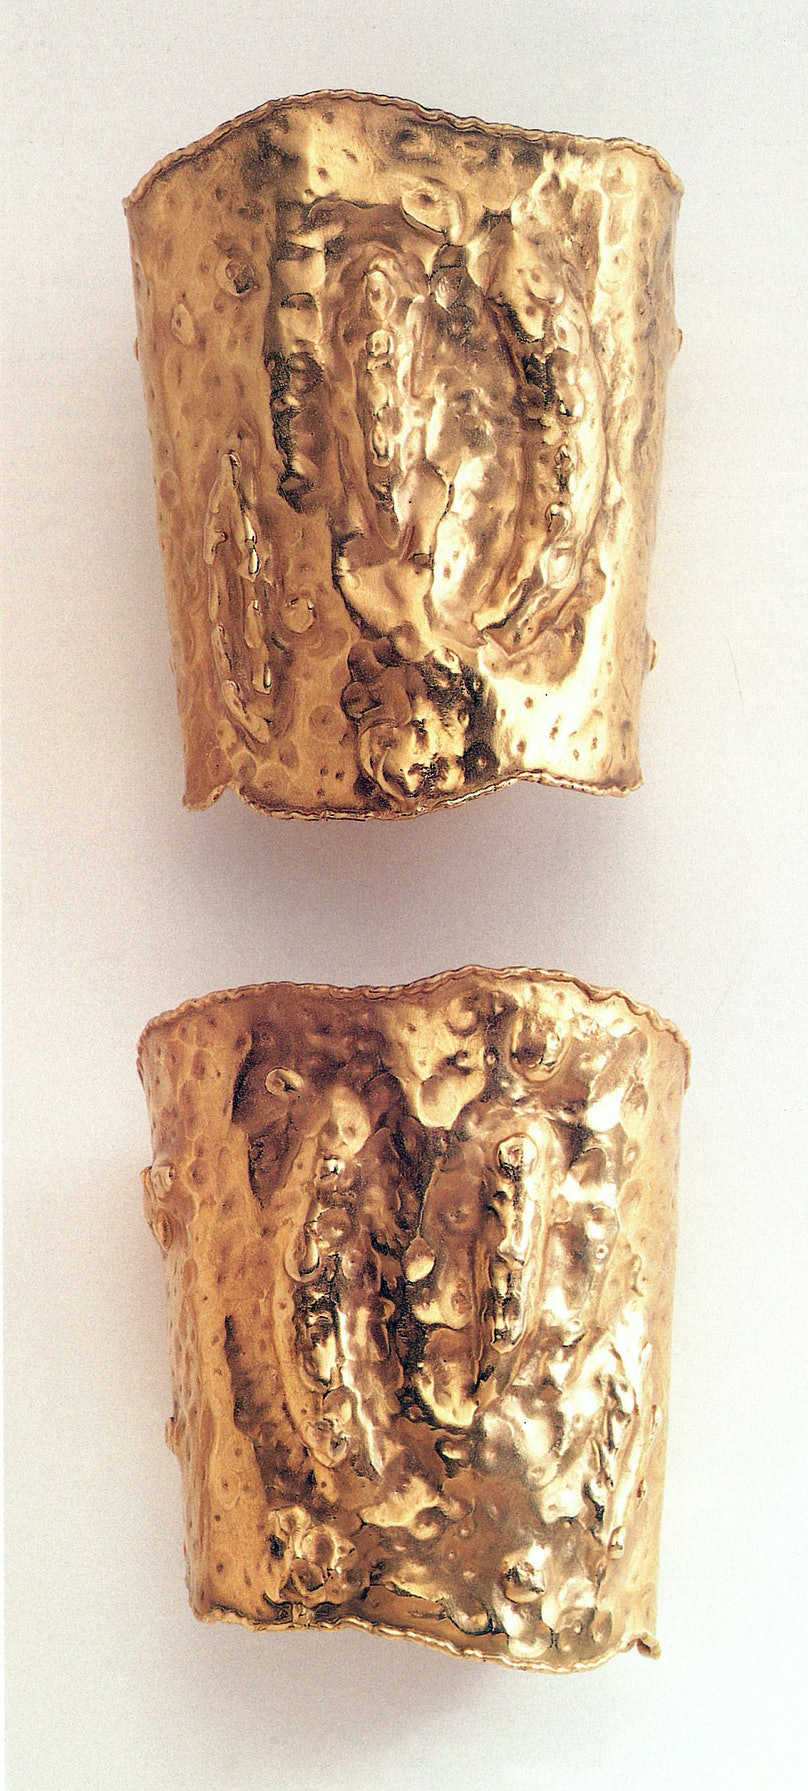 Gold Cuff Bangle-Bracelets, Greece from The Estate of Jacqueline Kennedy Onassis